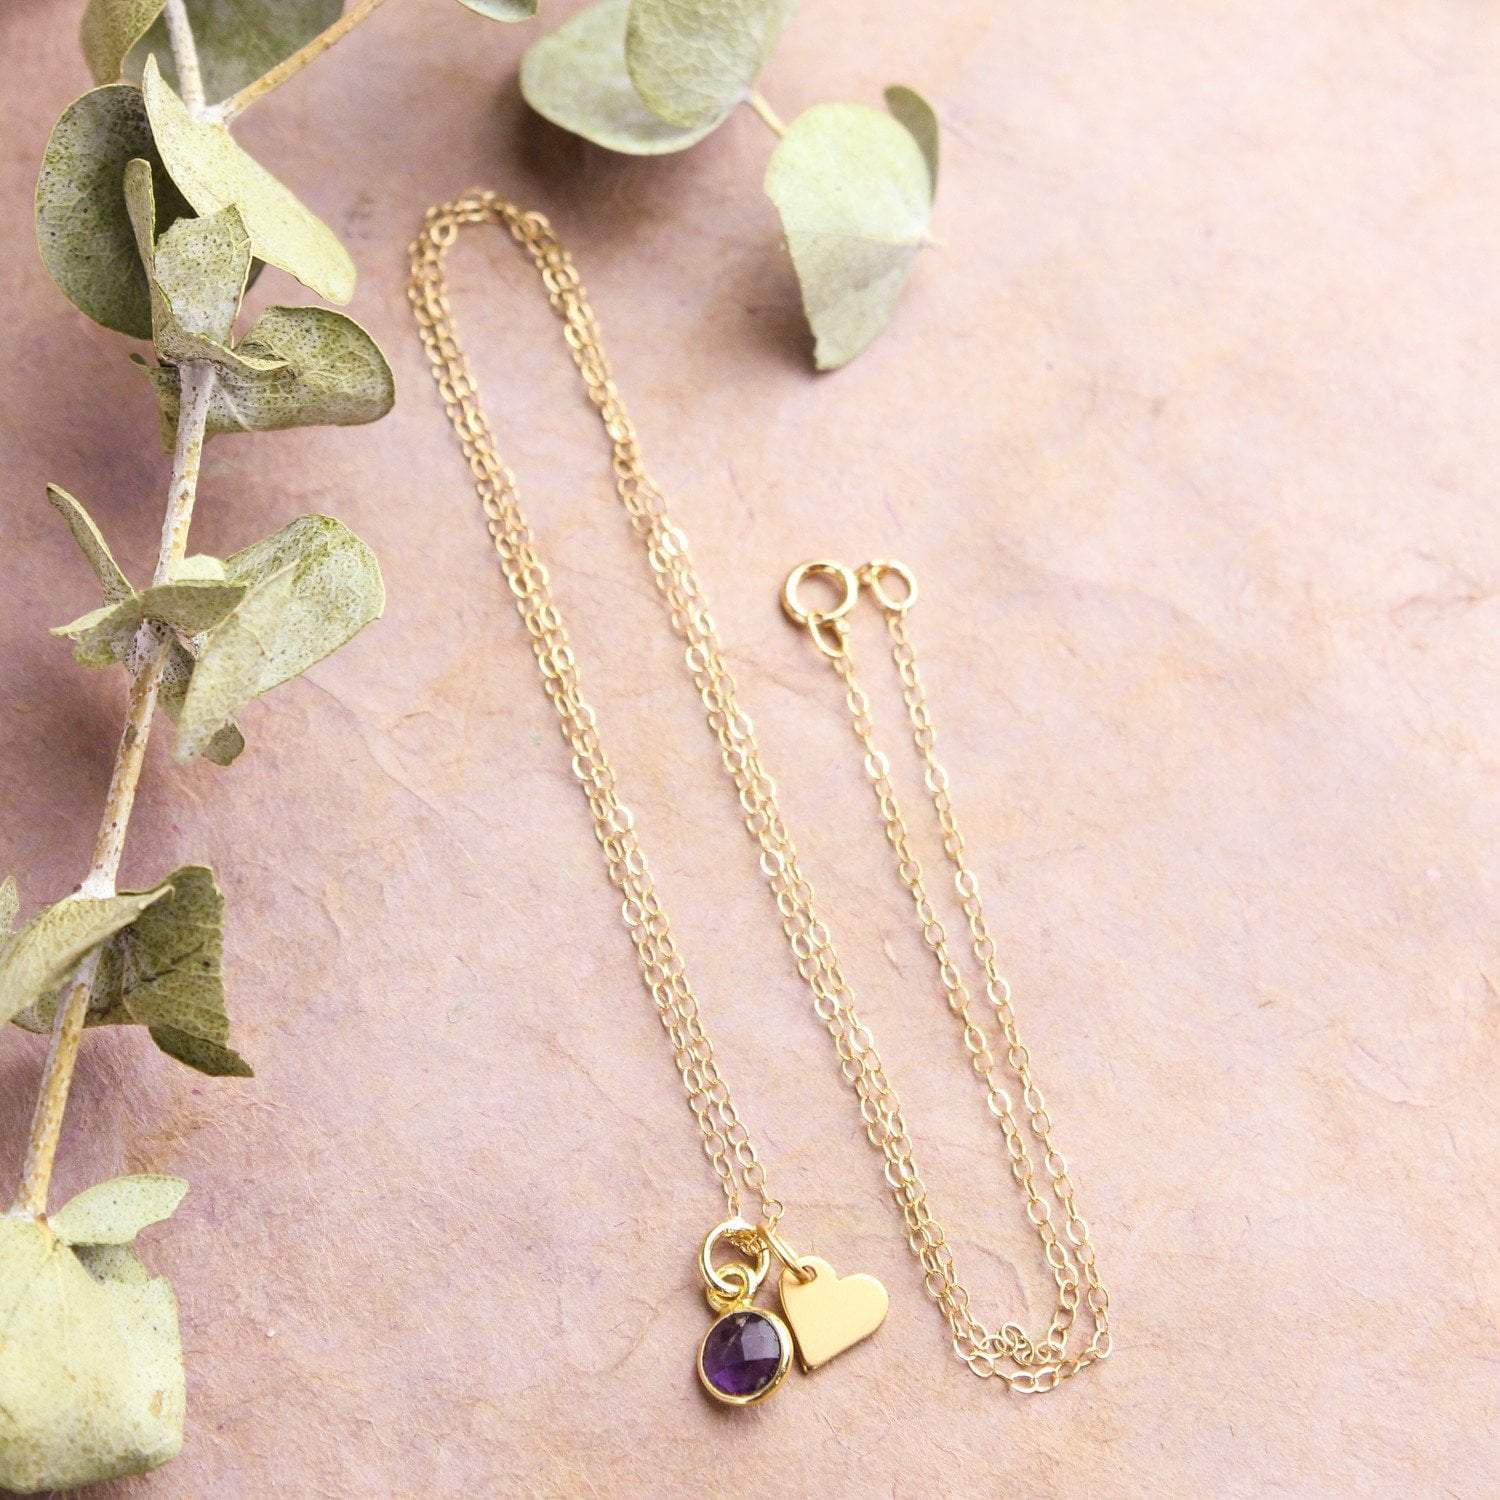 Necklaces Tiny Love and Tenderness Necklace JN717